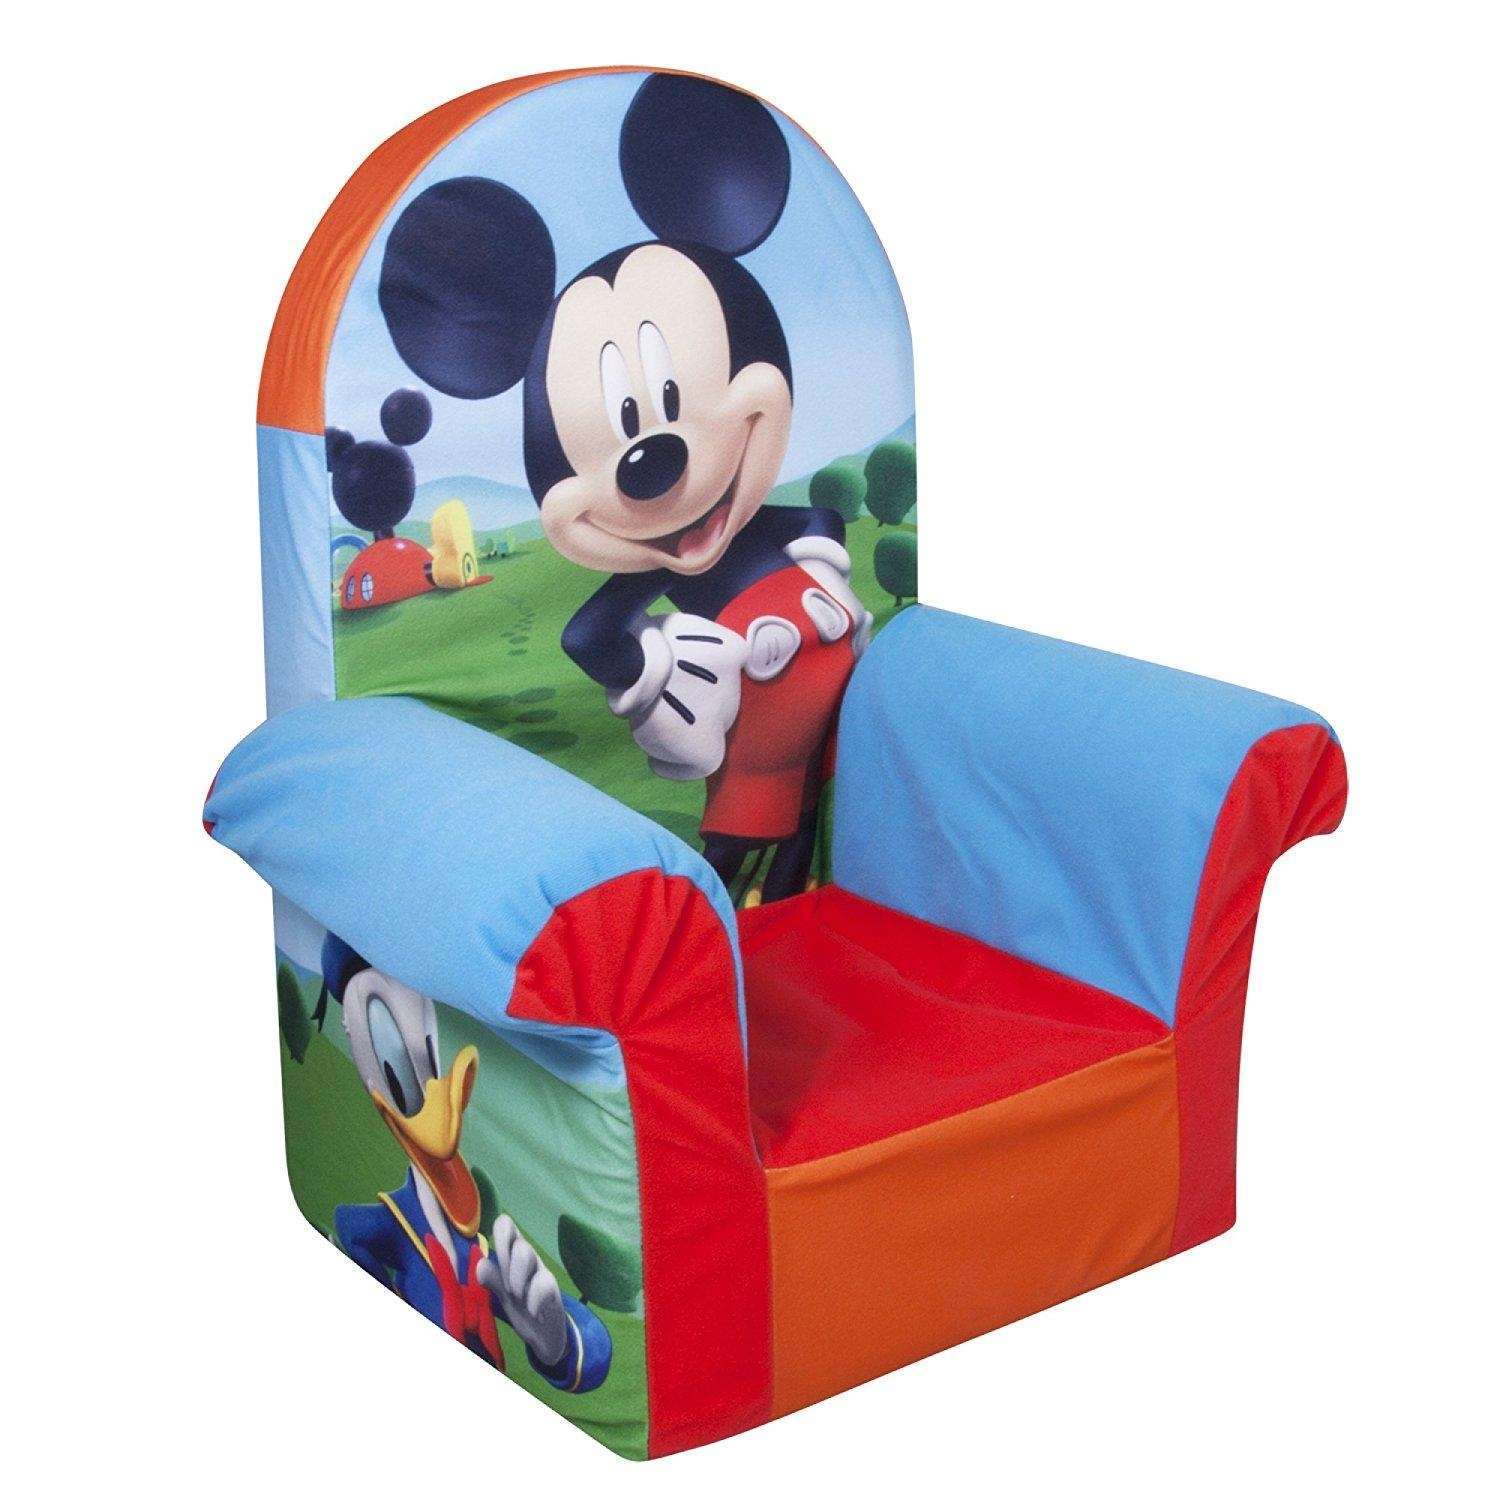 Disney Mickey Mouse Clubhouse Toddler Sofa Chair And Ottoman In Mickey Mouse Clubhouse Couches (View 13 of 20)